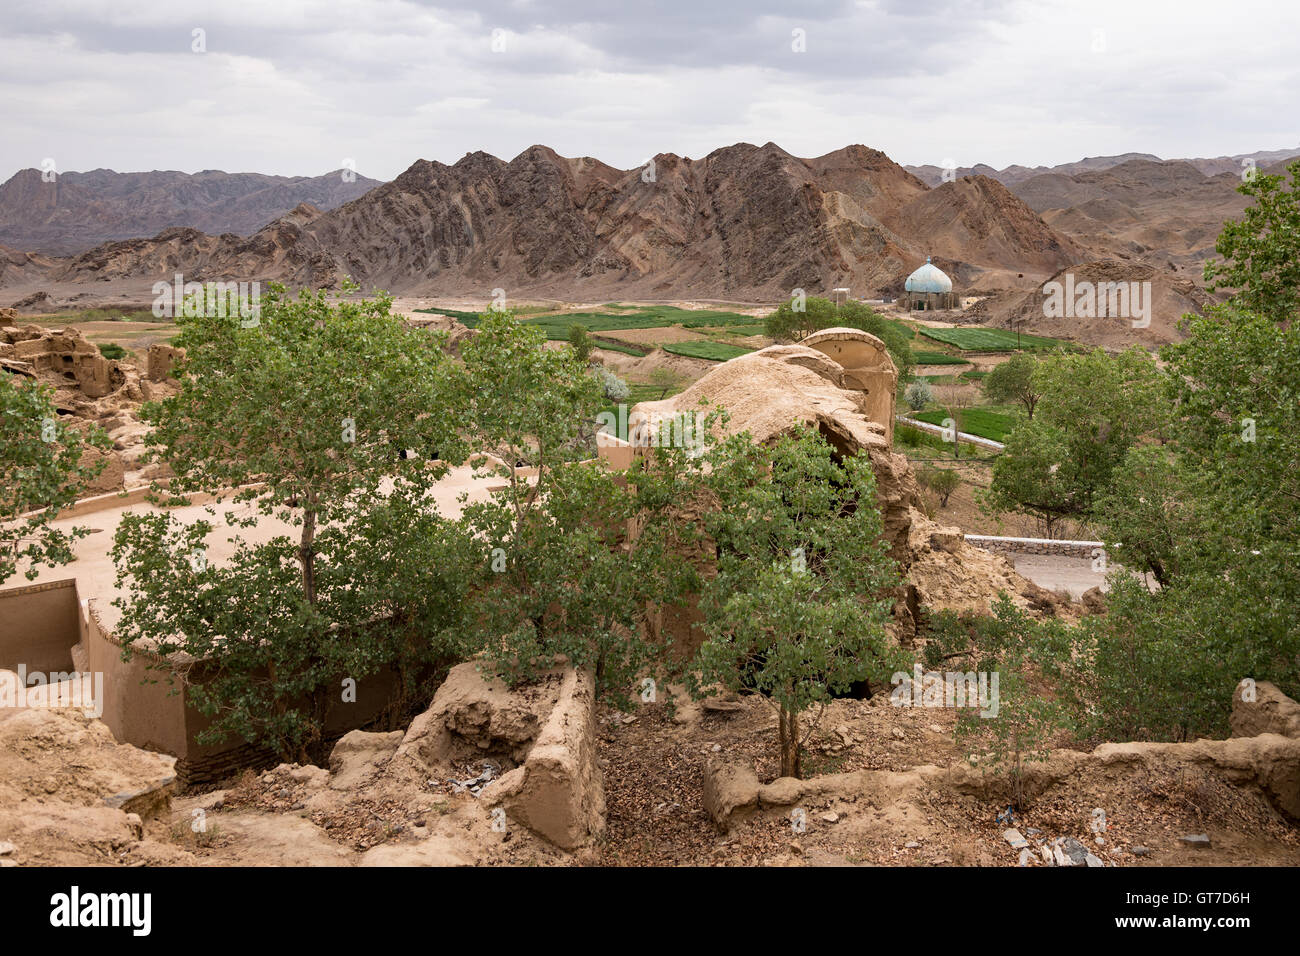 The abandoned village of Kharanaq is near the city of Yazd, in central Iran. Built in the shadow of a scenic mountain, - Stock Image